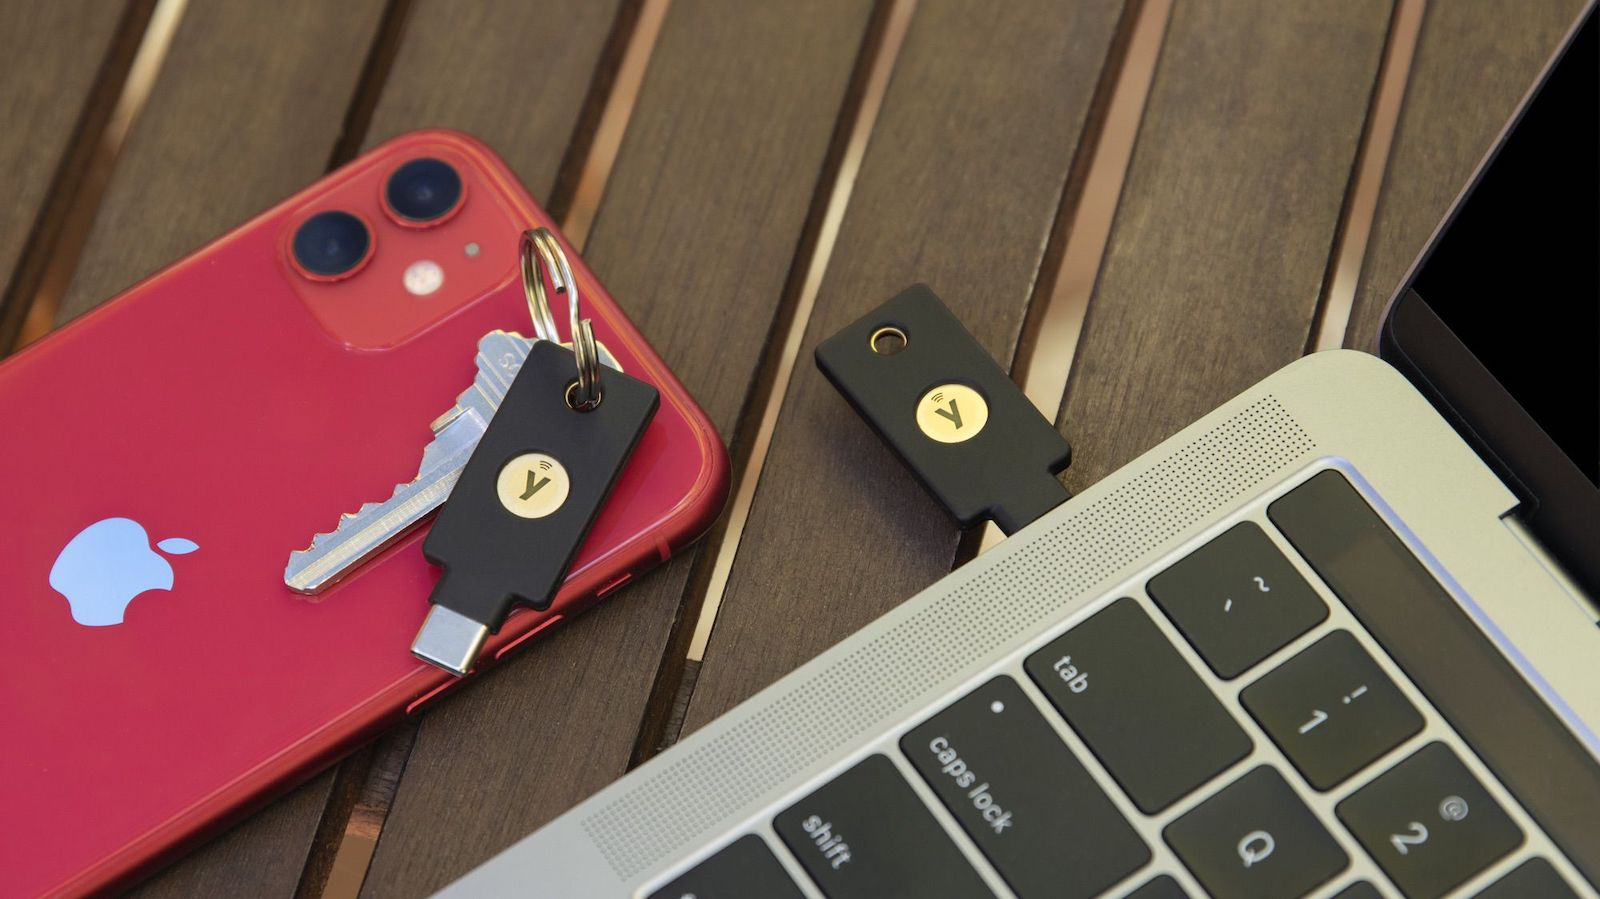 Yubico YubiKey 5C NFC multiprotocol security key protects against account takeovers